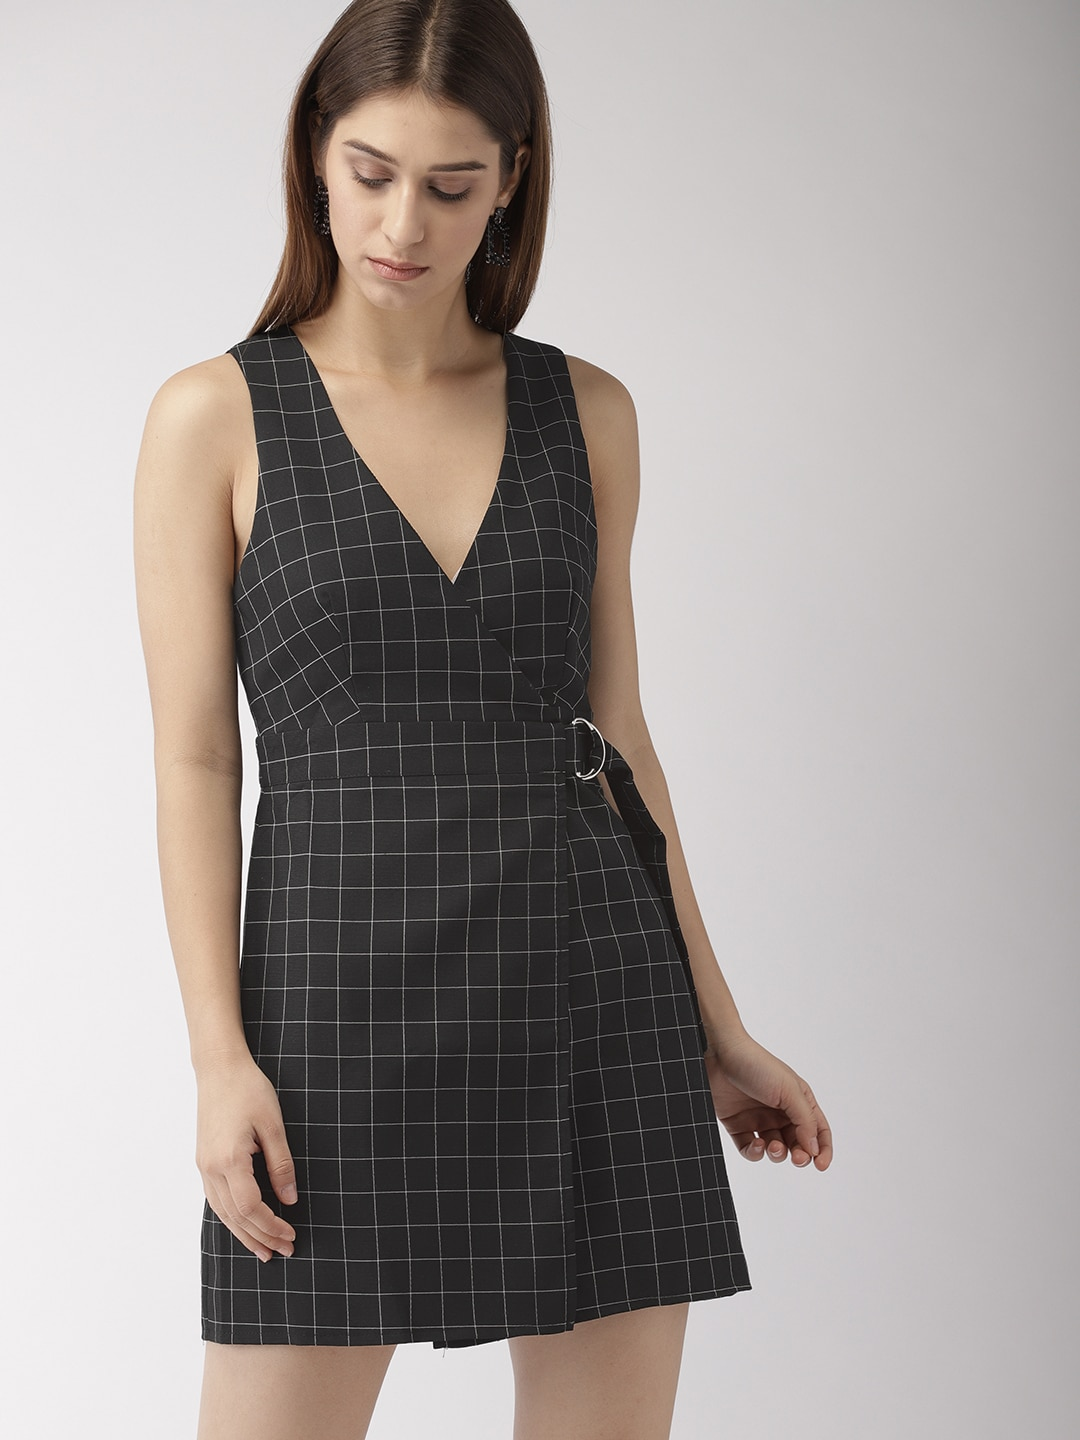 7db172aa680 Forever 21 Wrap Dresses - Buy Forever 21 Wrap Dresses online in India